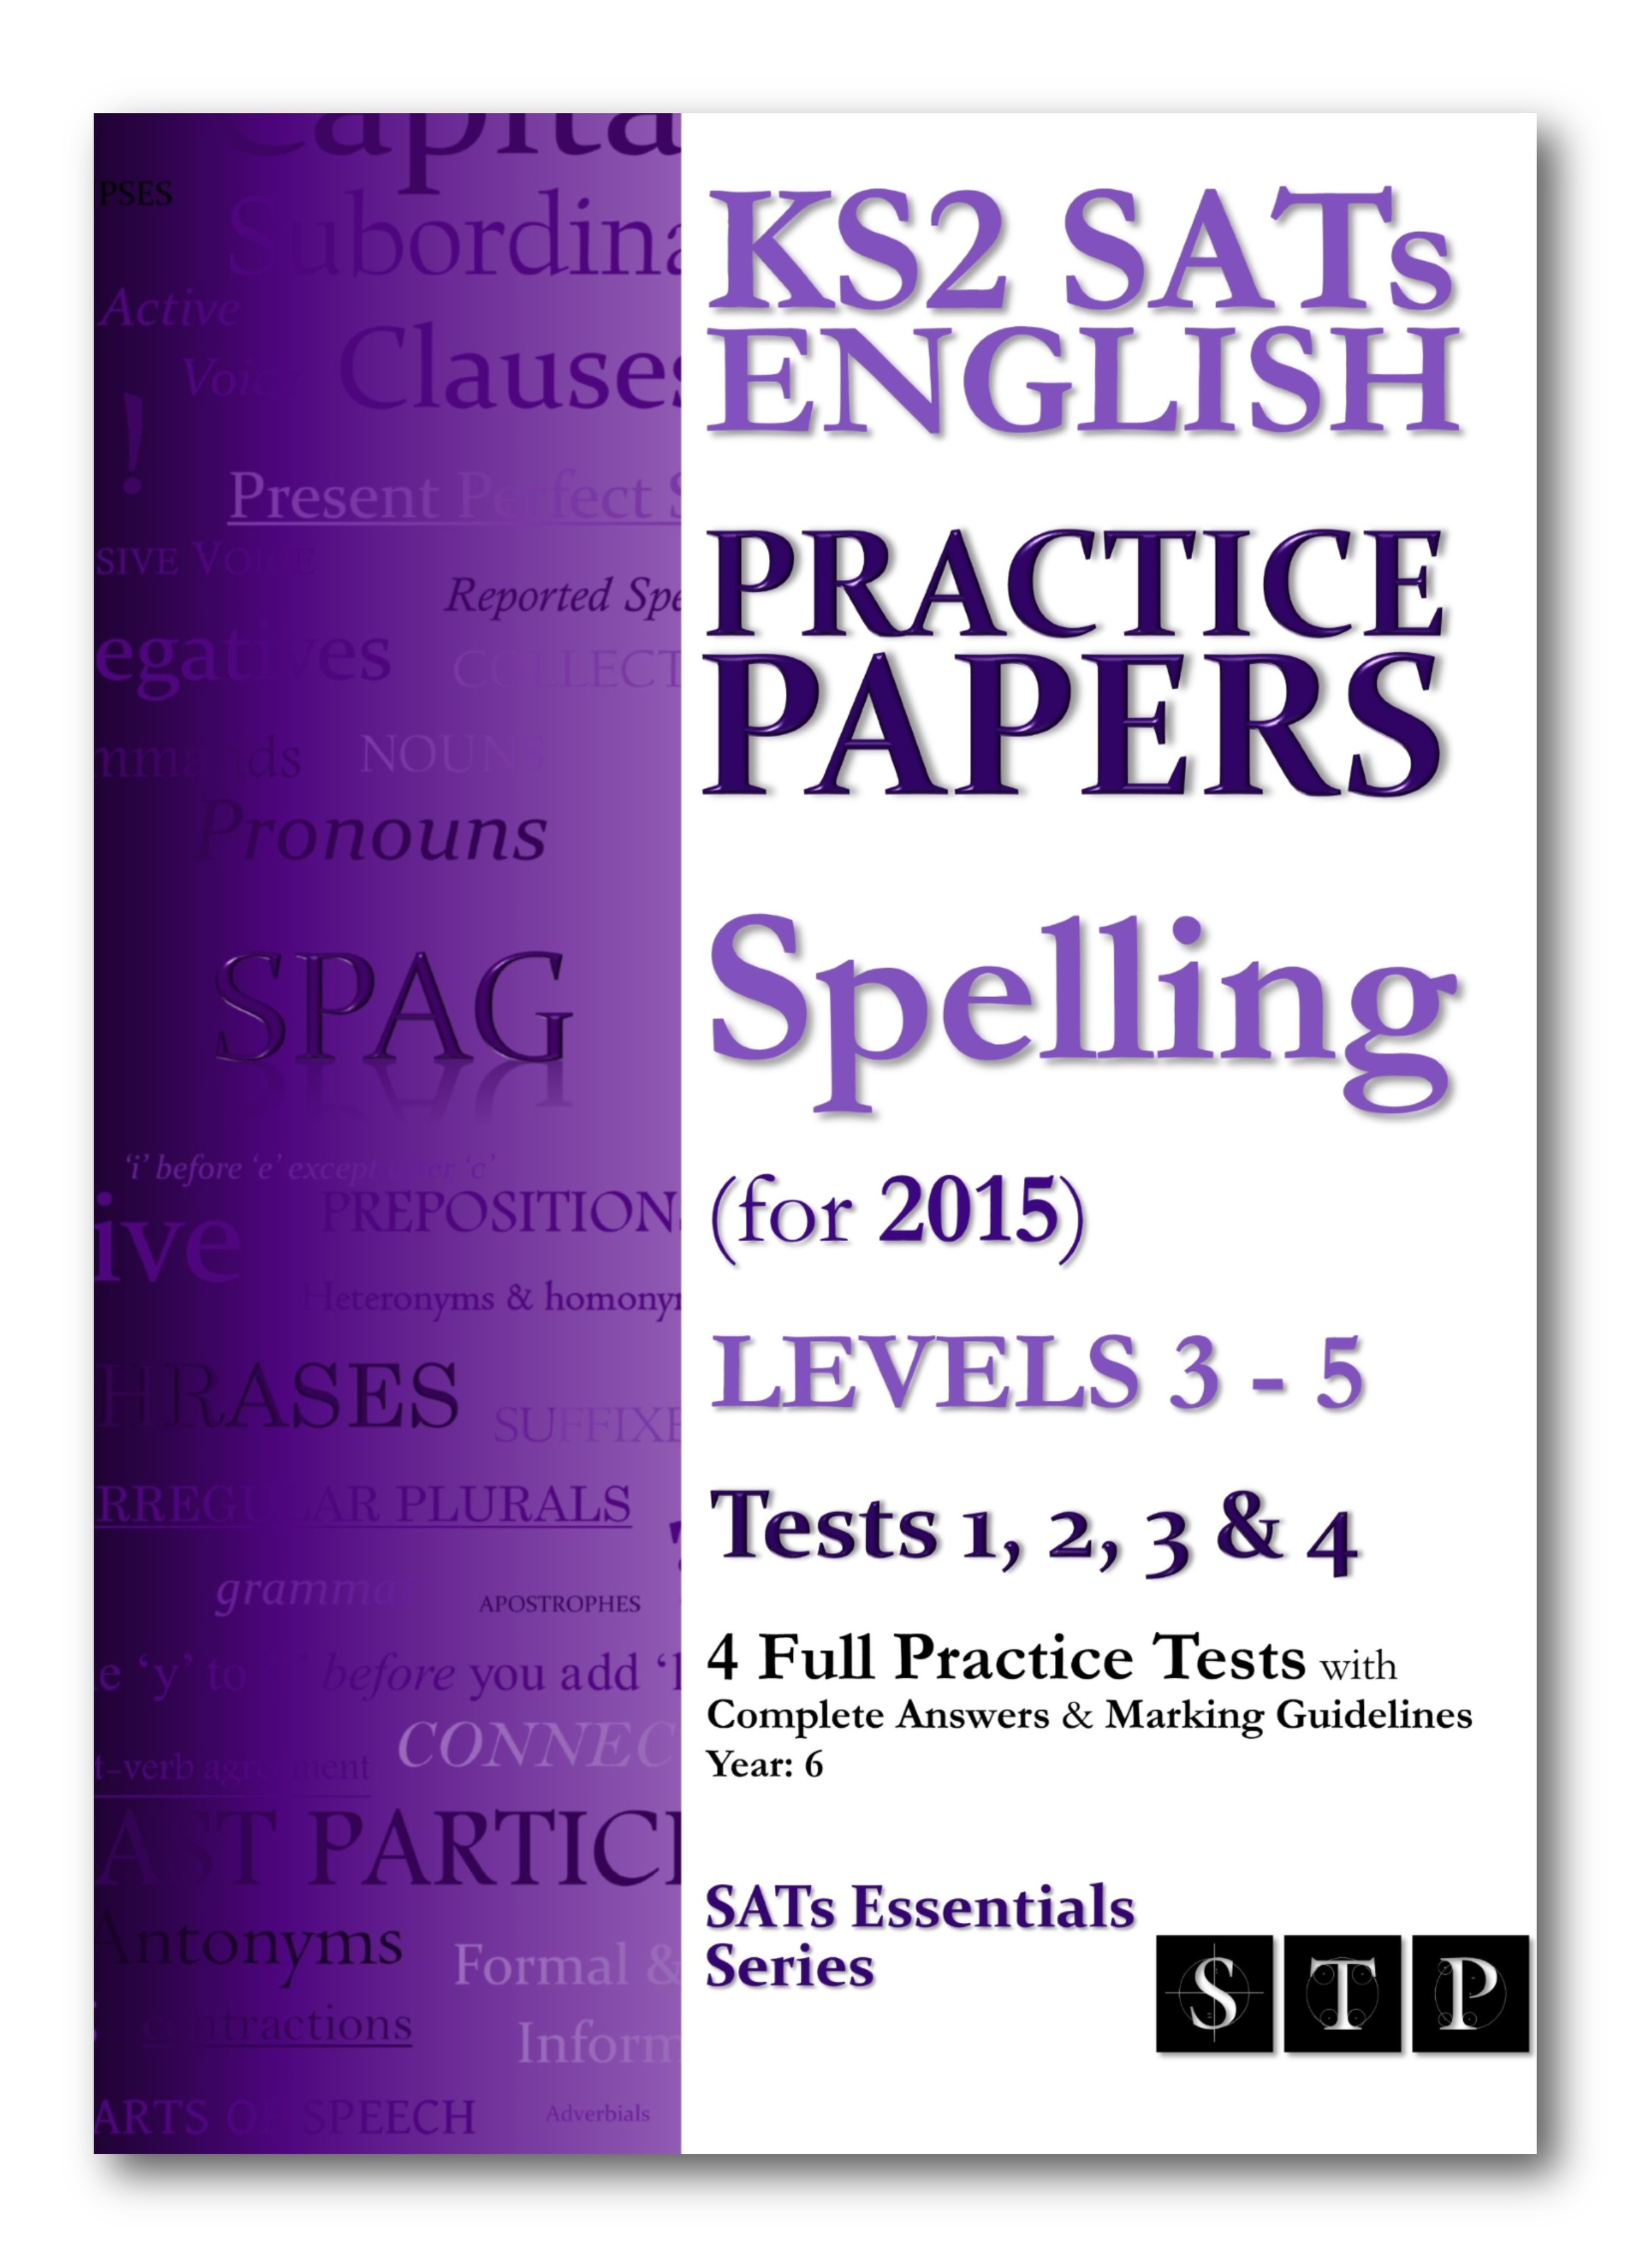 KS2 SATS Spelling Practice Papers Levels 3-5 Tests 1, 2, 3 & 4